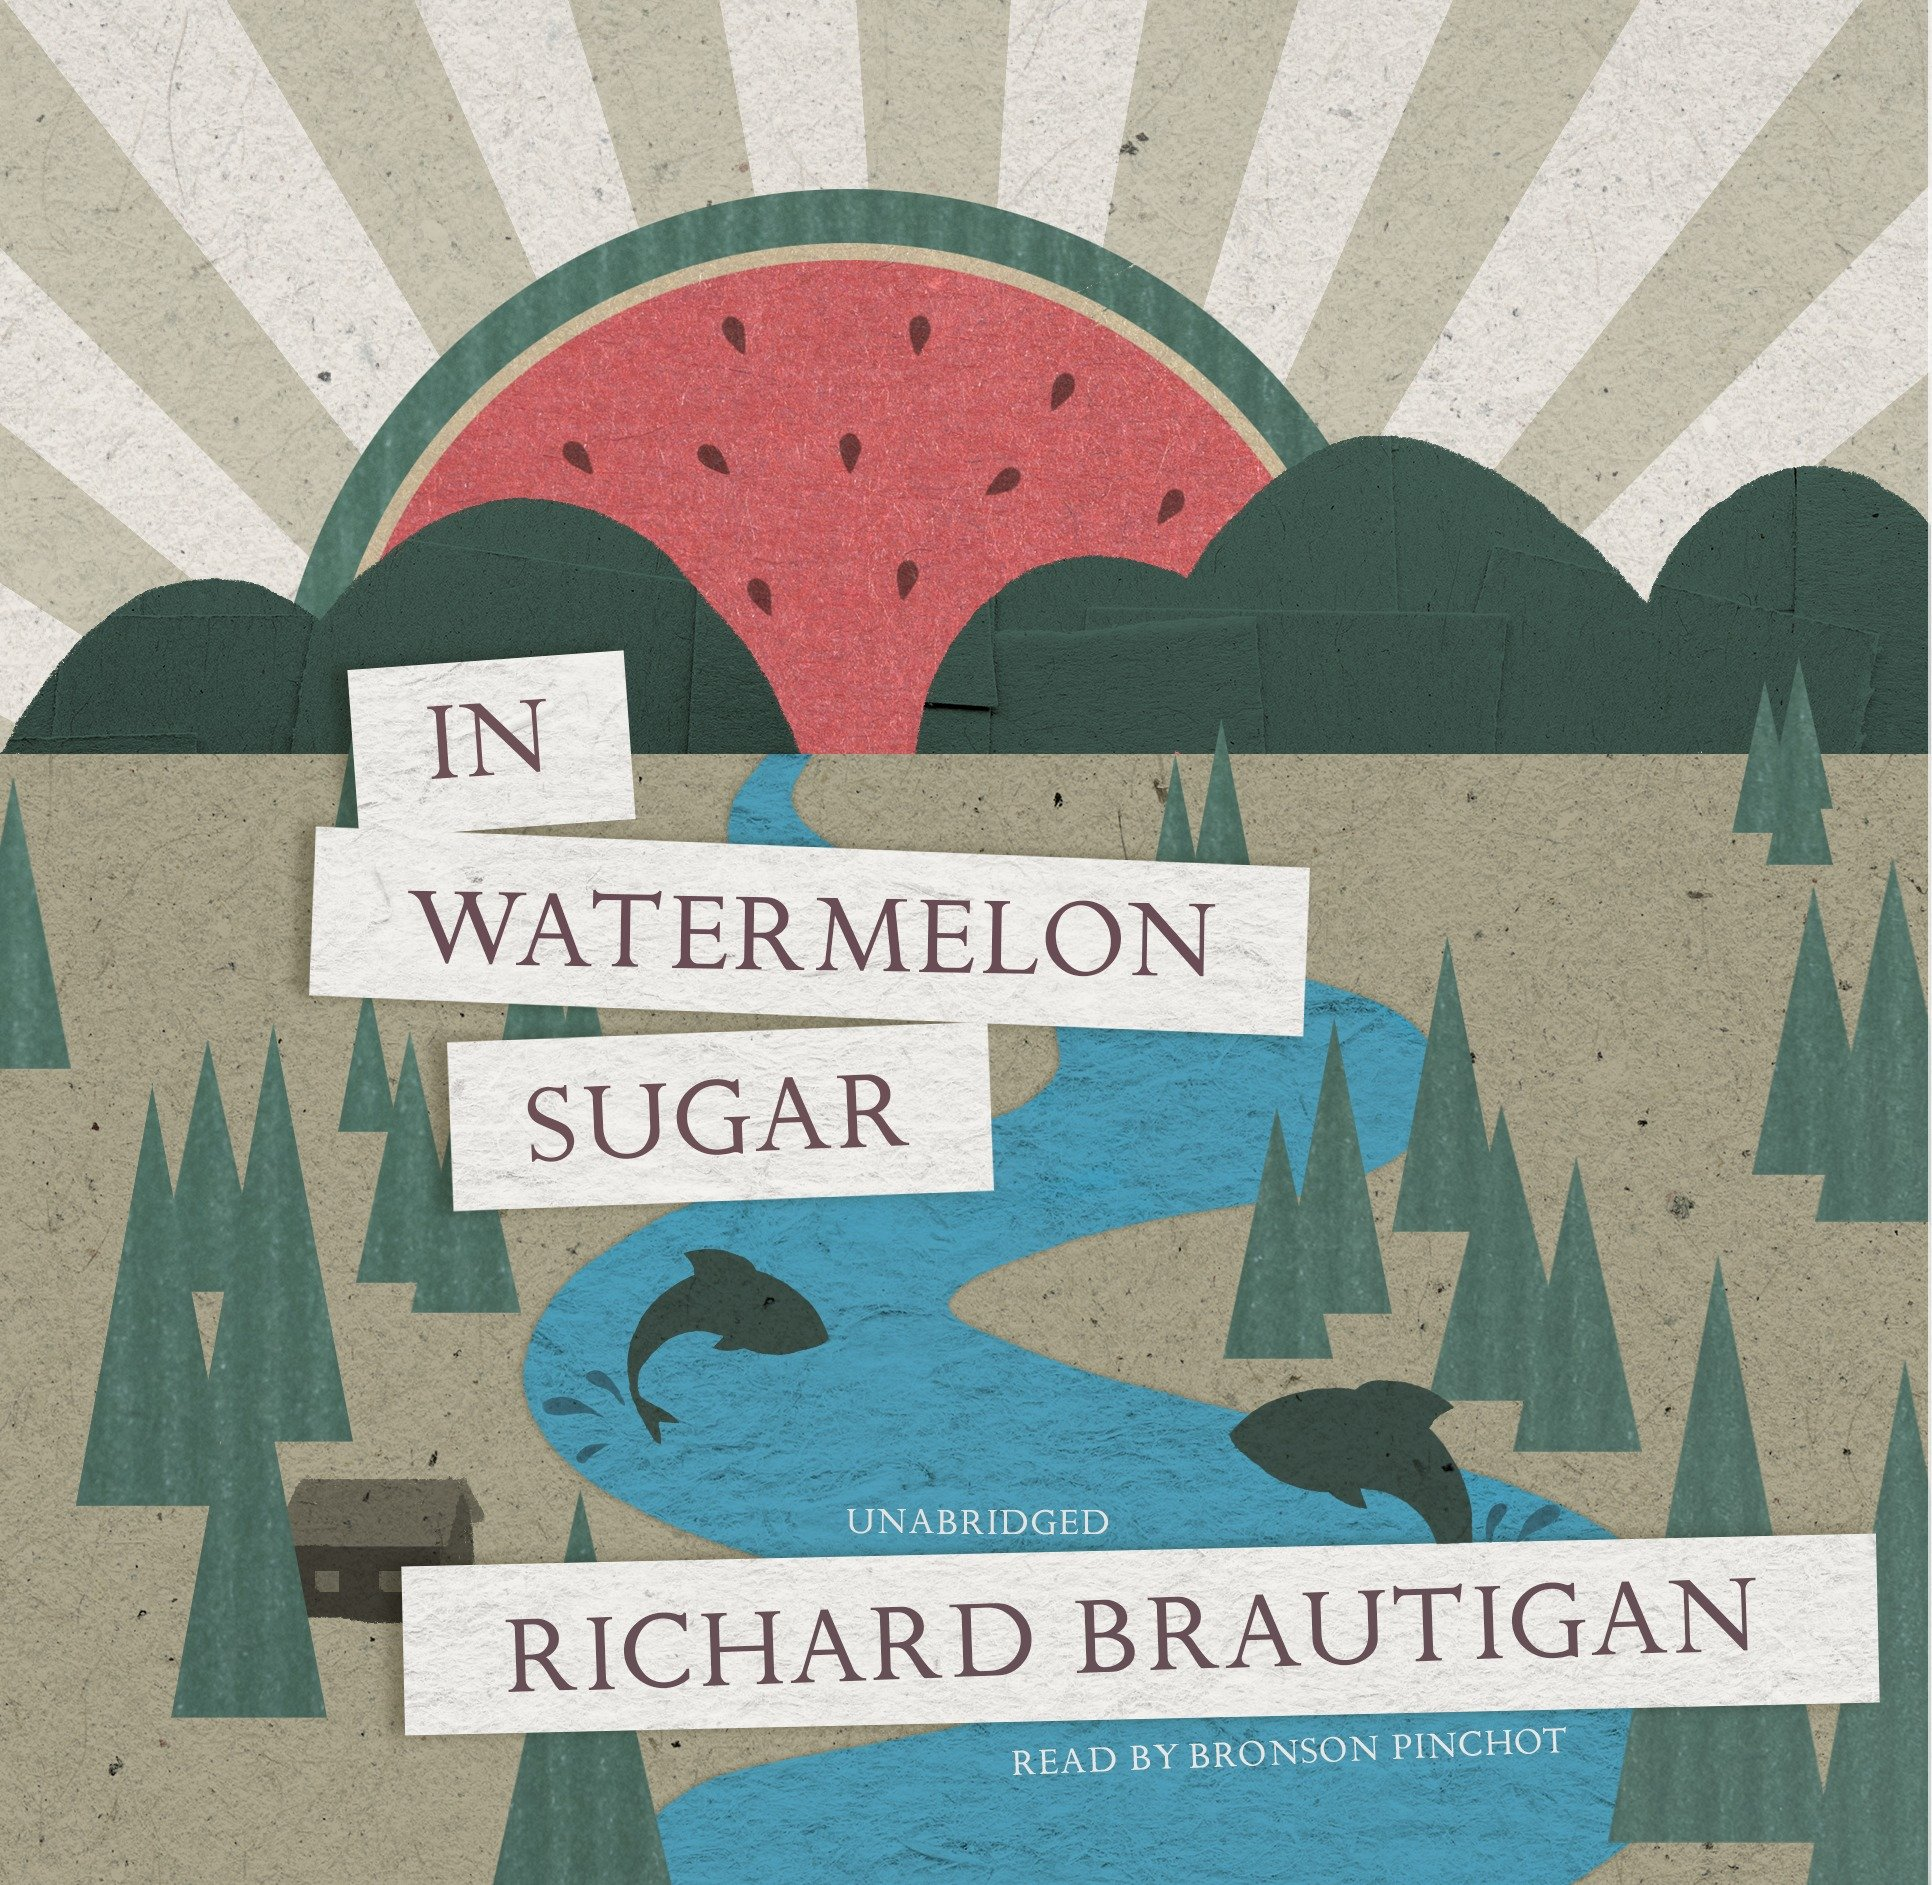 In Watermelon Sugar: Richard Brautigan: 9781504759571: Amazon.com: Books